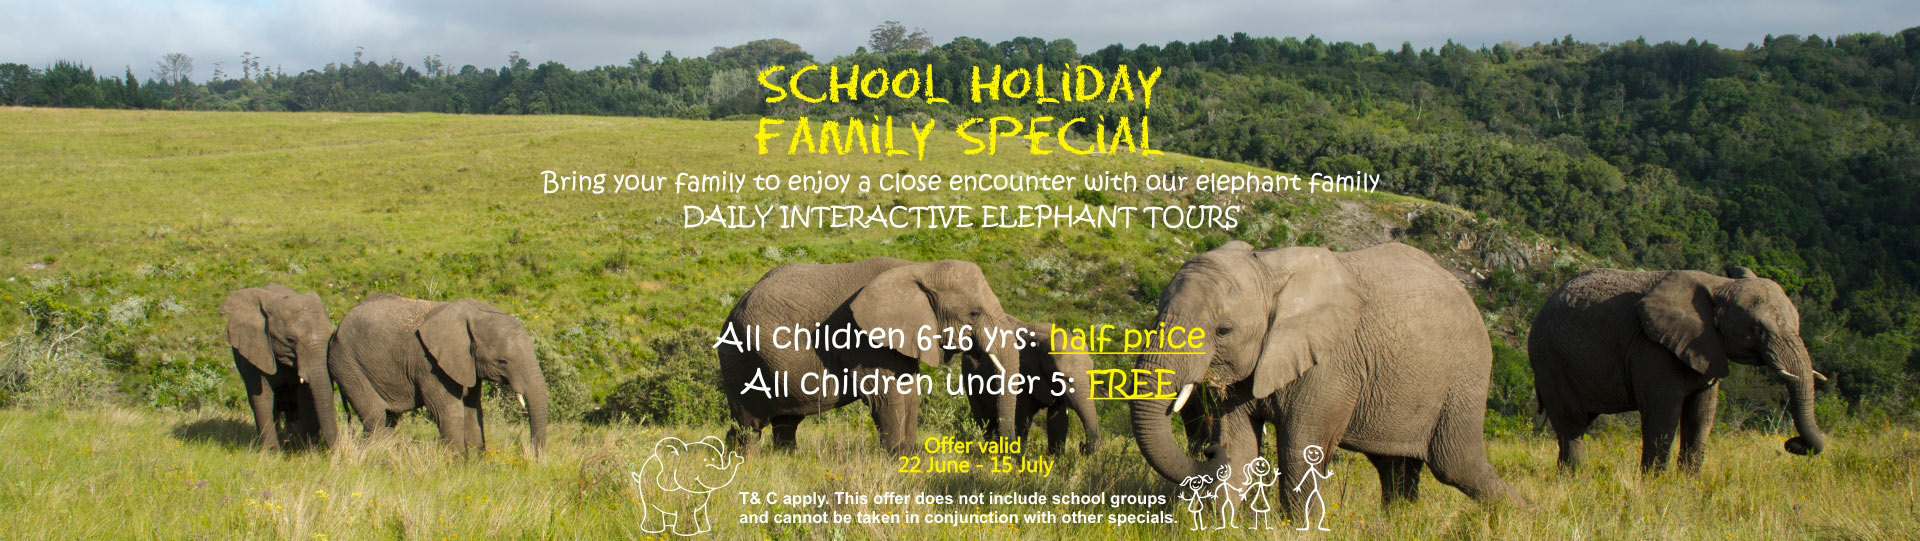 School-holiday-special-mockup-for-homepage-banner_4-1